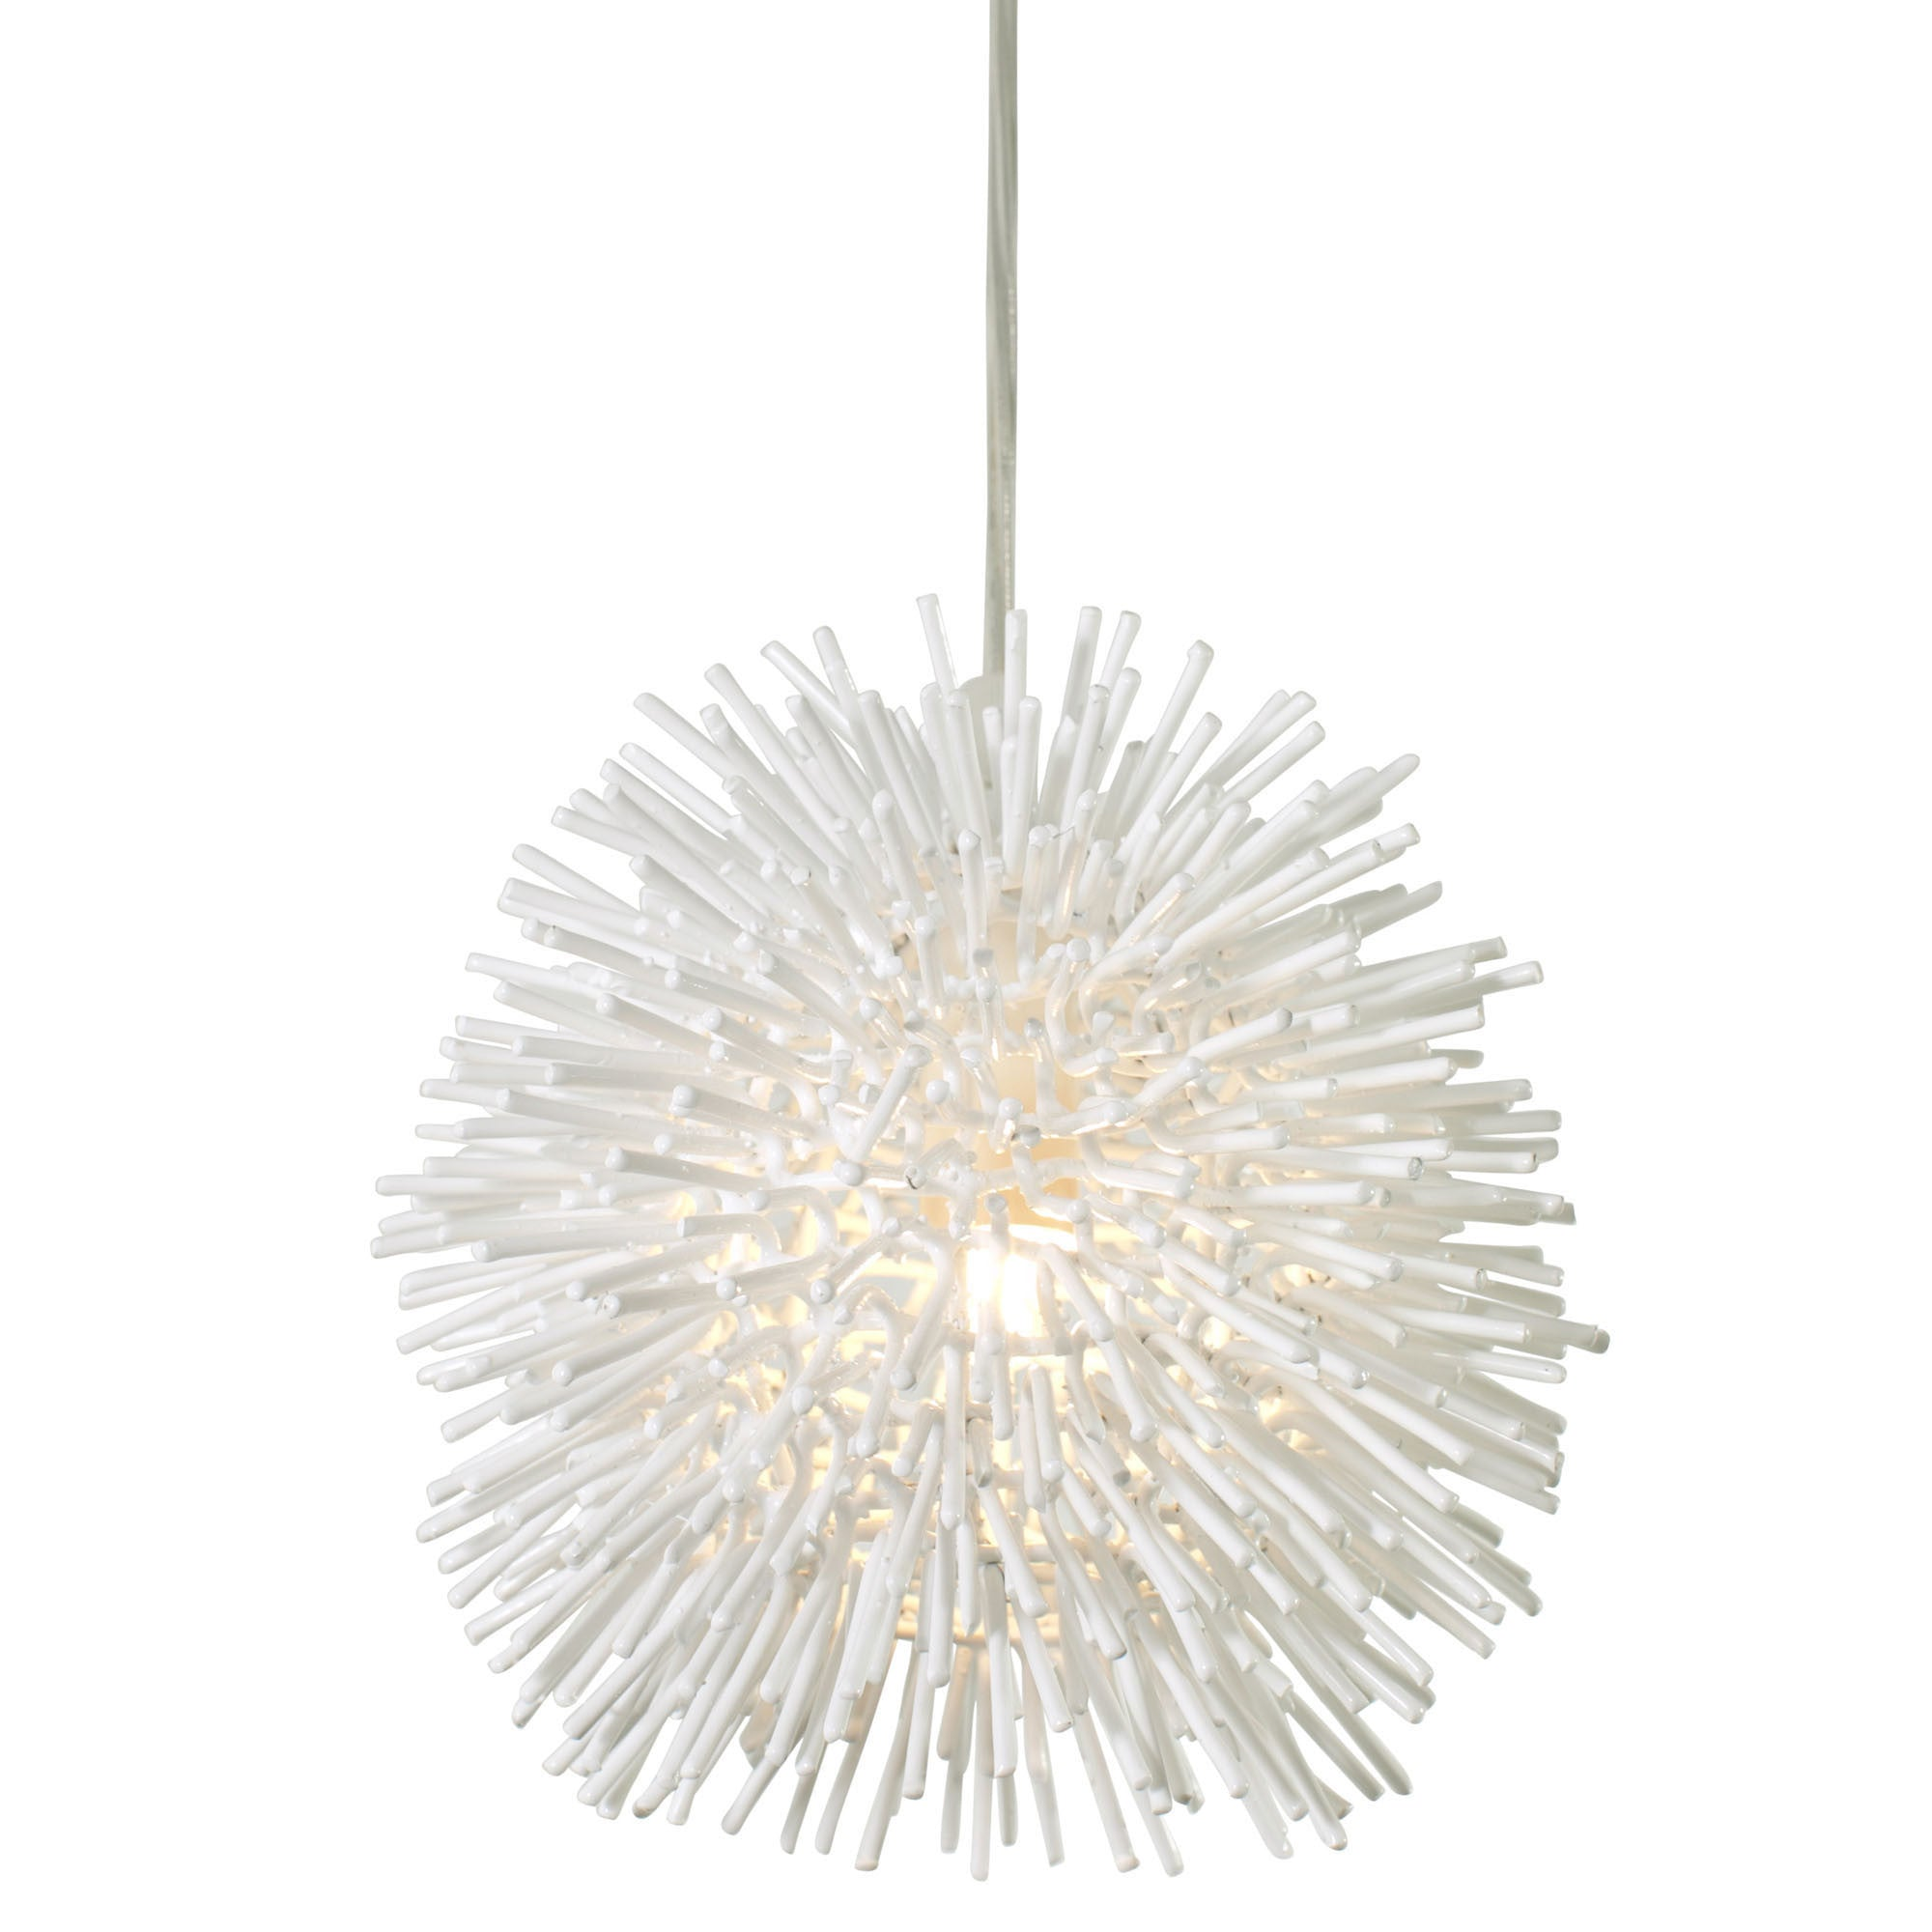 room century full size home magnificent chandeliers murano designer dining viyet urchin mid chandelier rectangular archived lighting furniture modern depot on bathroom for of